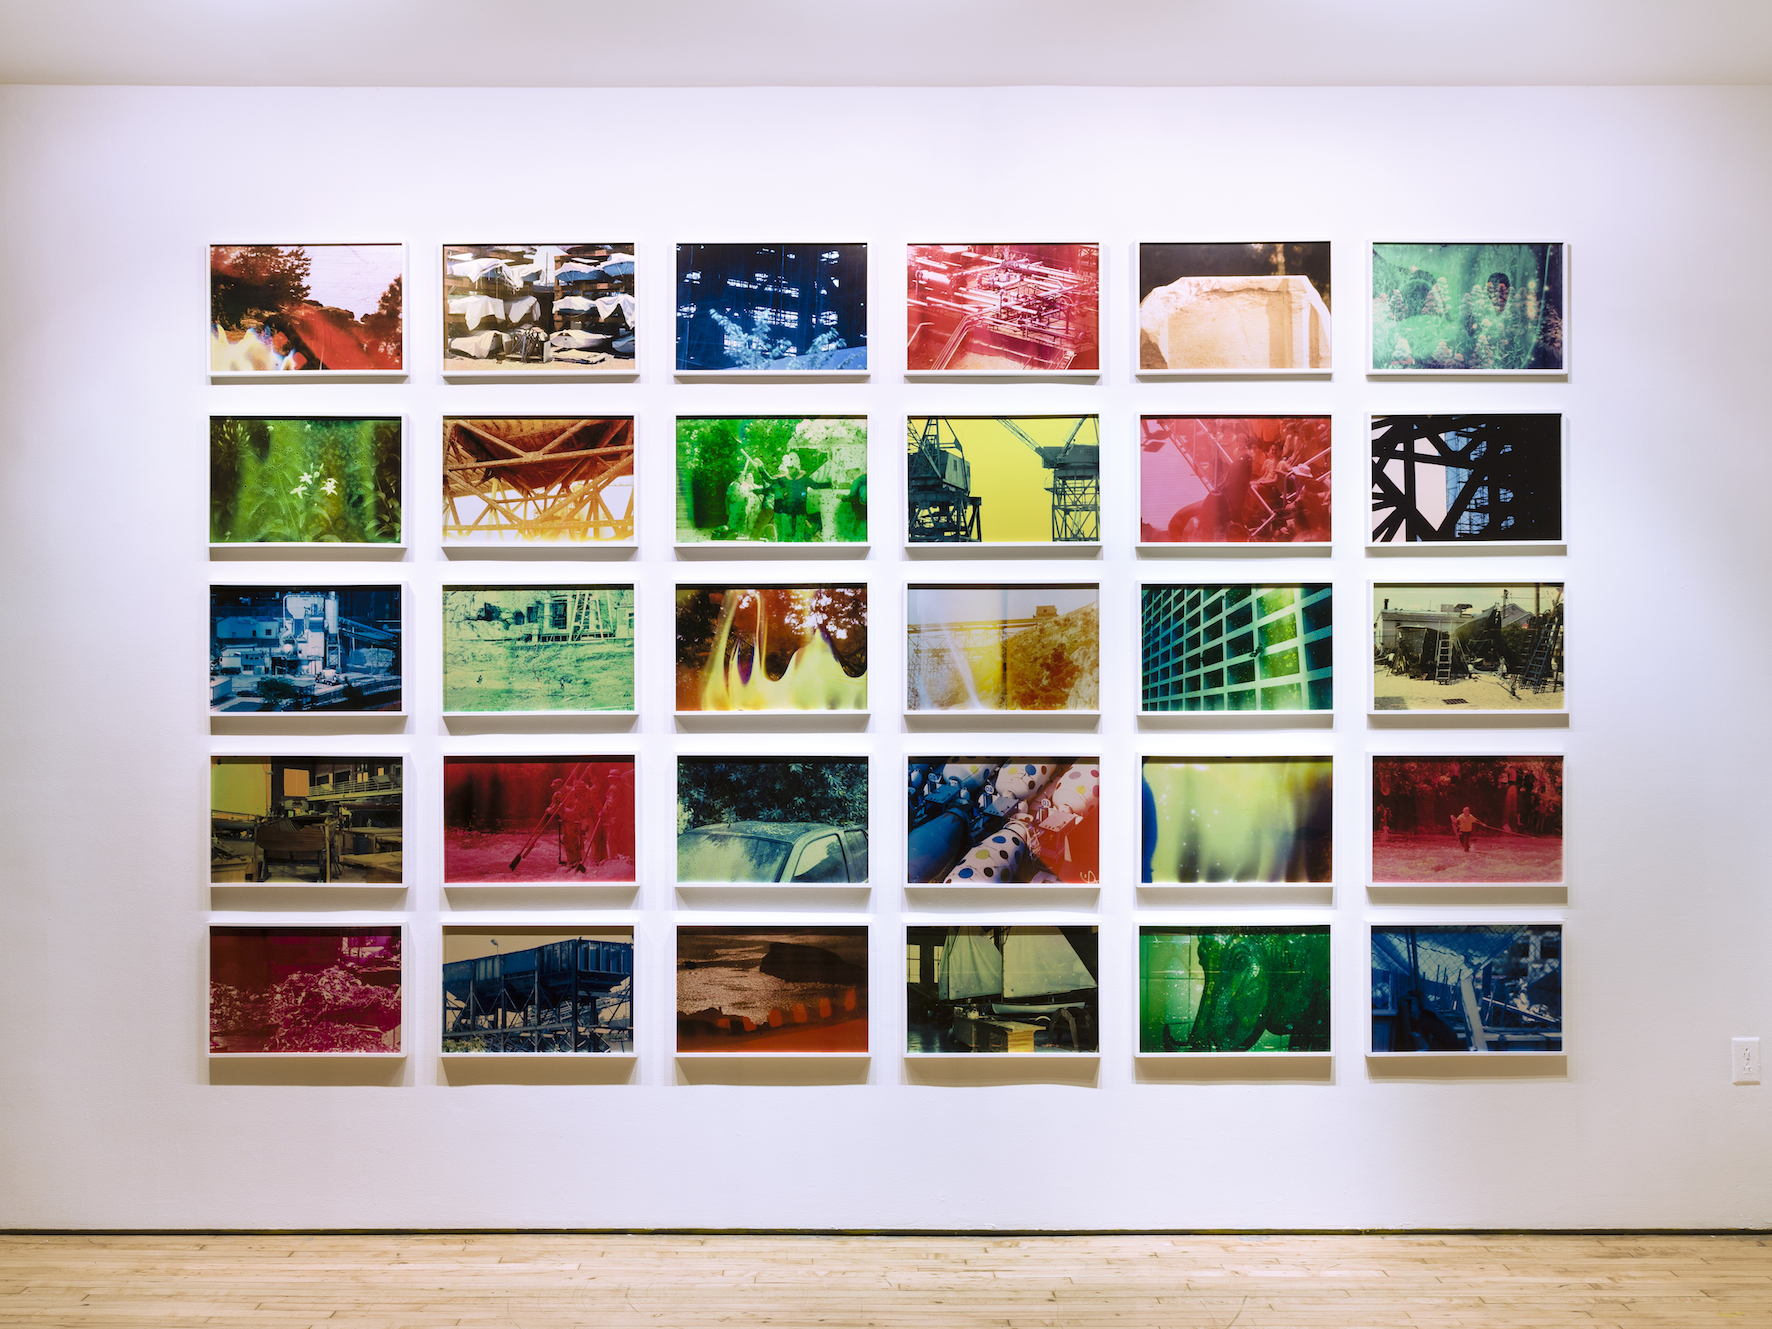 The Hollow Desire to Populate Imaginary Cities, 2014, 30 C- Prints from chemically altered slides on metallic paper, 34 x 50 cm each,Edition 3 + 1APInstallation shot of Exhibition atArt in General , NYC, 2014- 2015.